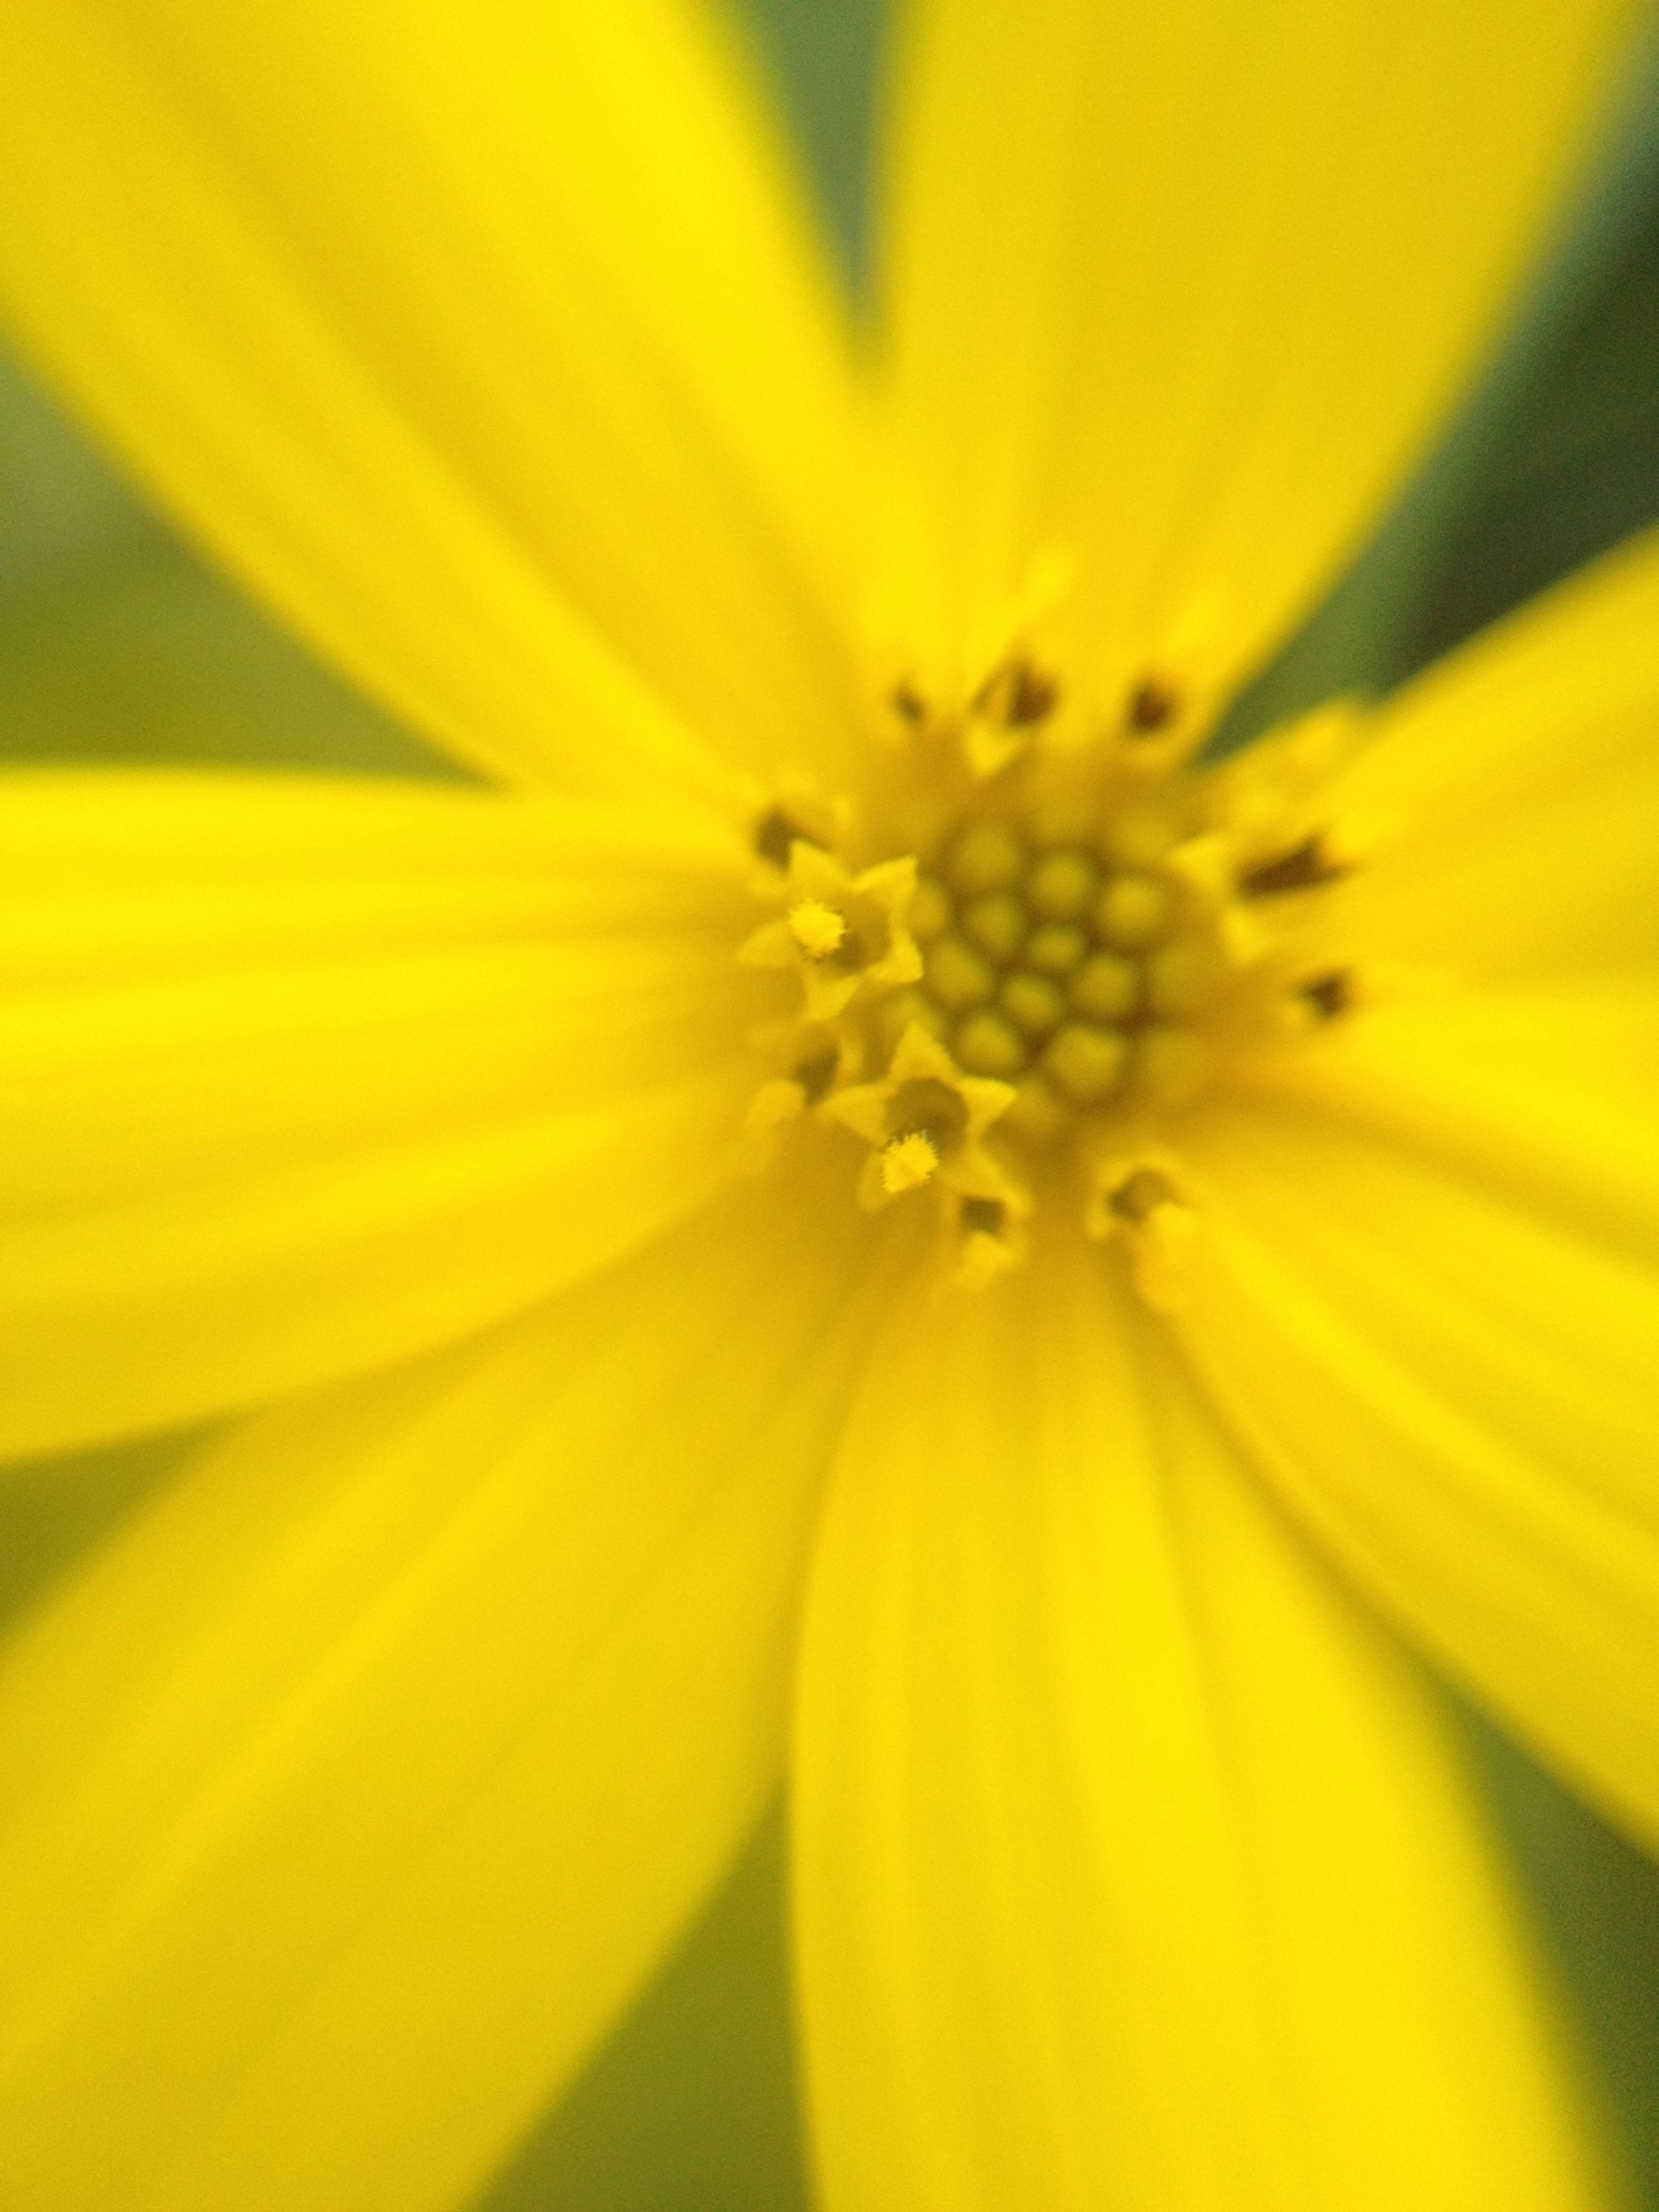 flower, petal, freshness, flower head, yellow, fragility, close-up, single flower, pollen, beauty in nature, growth, stamen, nature, macro, extreme close-up, full frame, selective focus, backgrounds, blooming, blossom